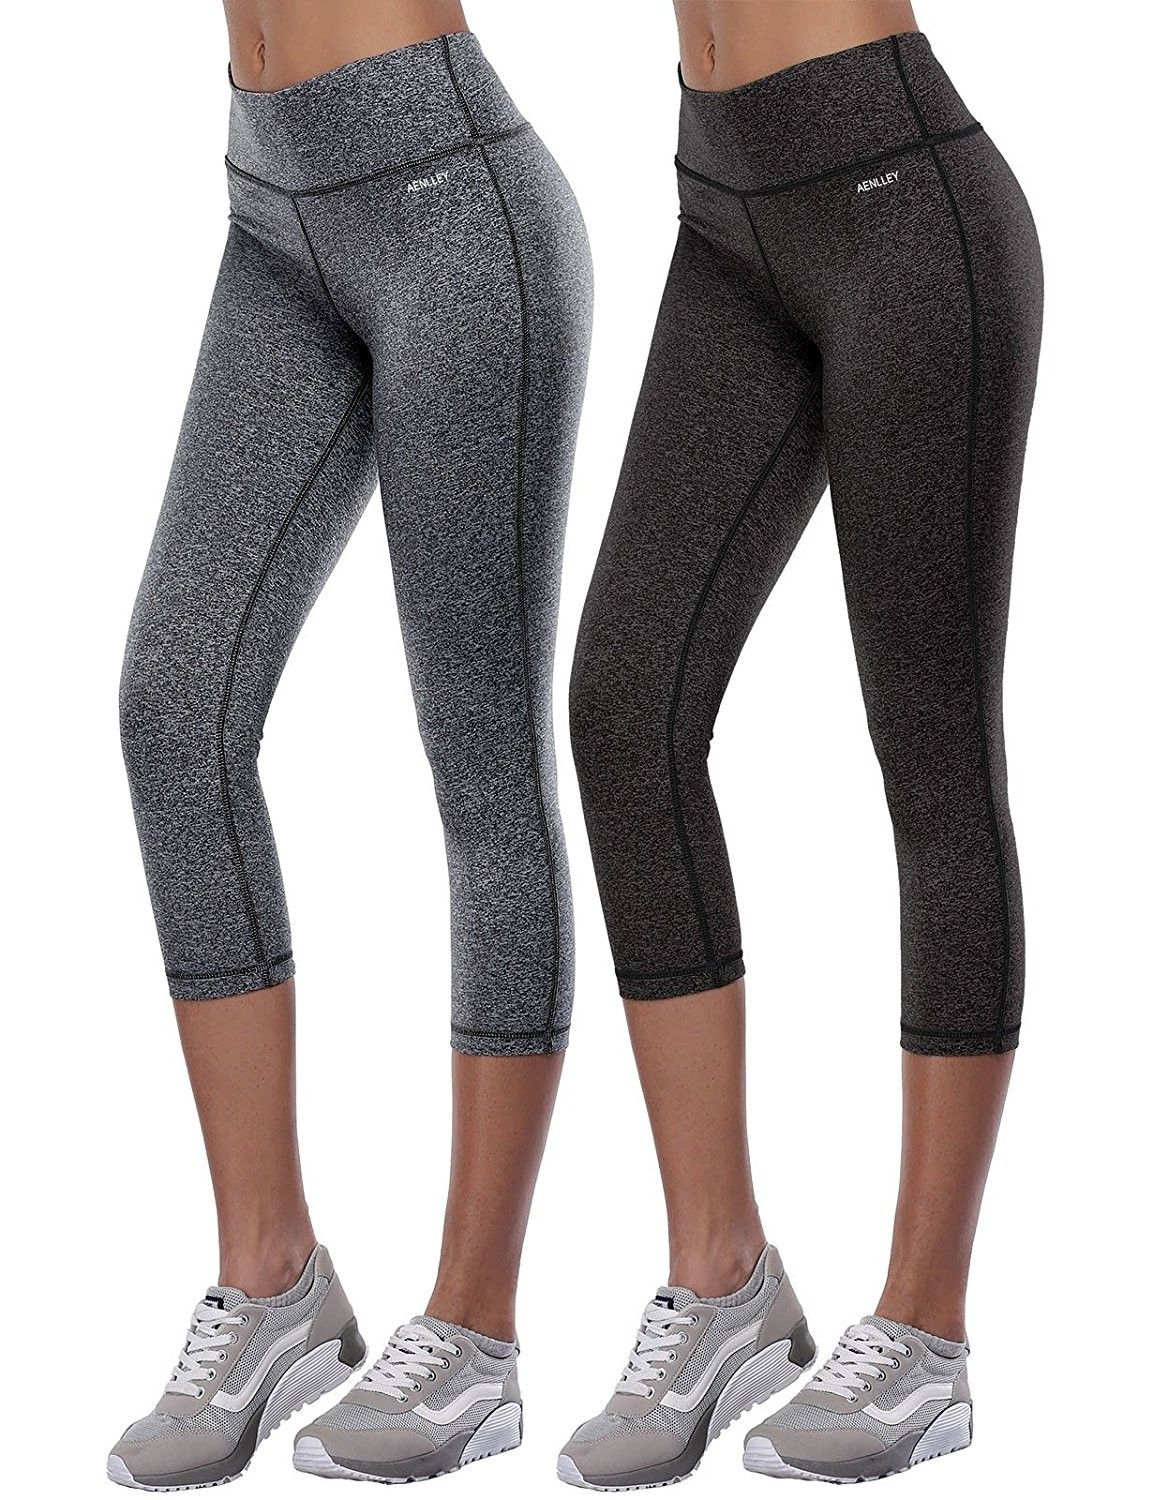 733b943c769 Women s Activewear Yoga Pants High Rise Slim Fit Tights Cropped Capris  Color Black Of 2 - Black+grey - CP12ETIEIIF